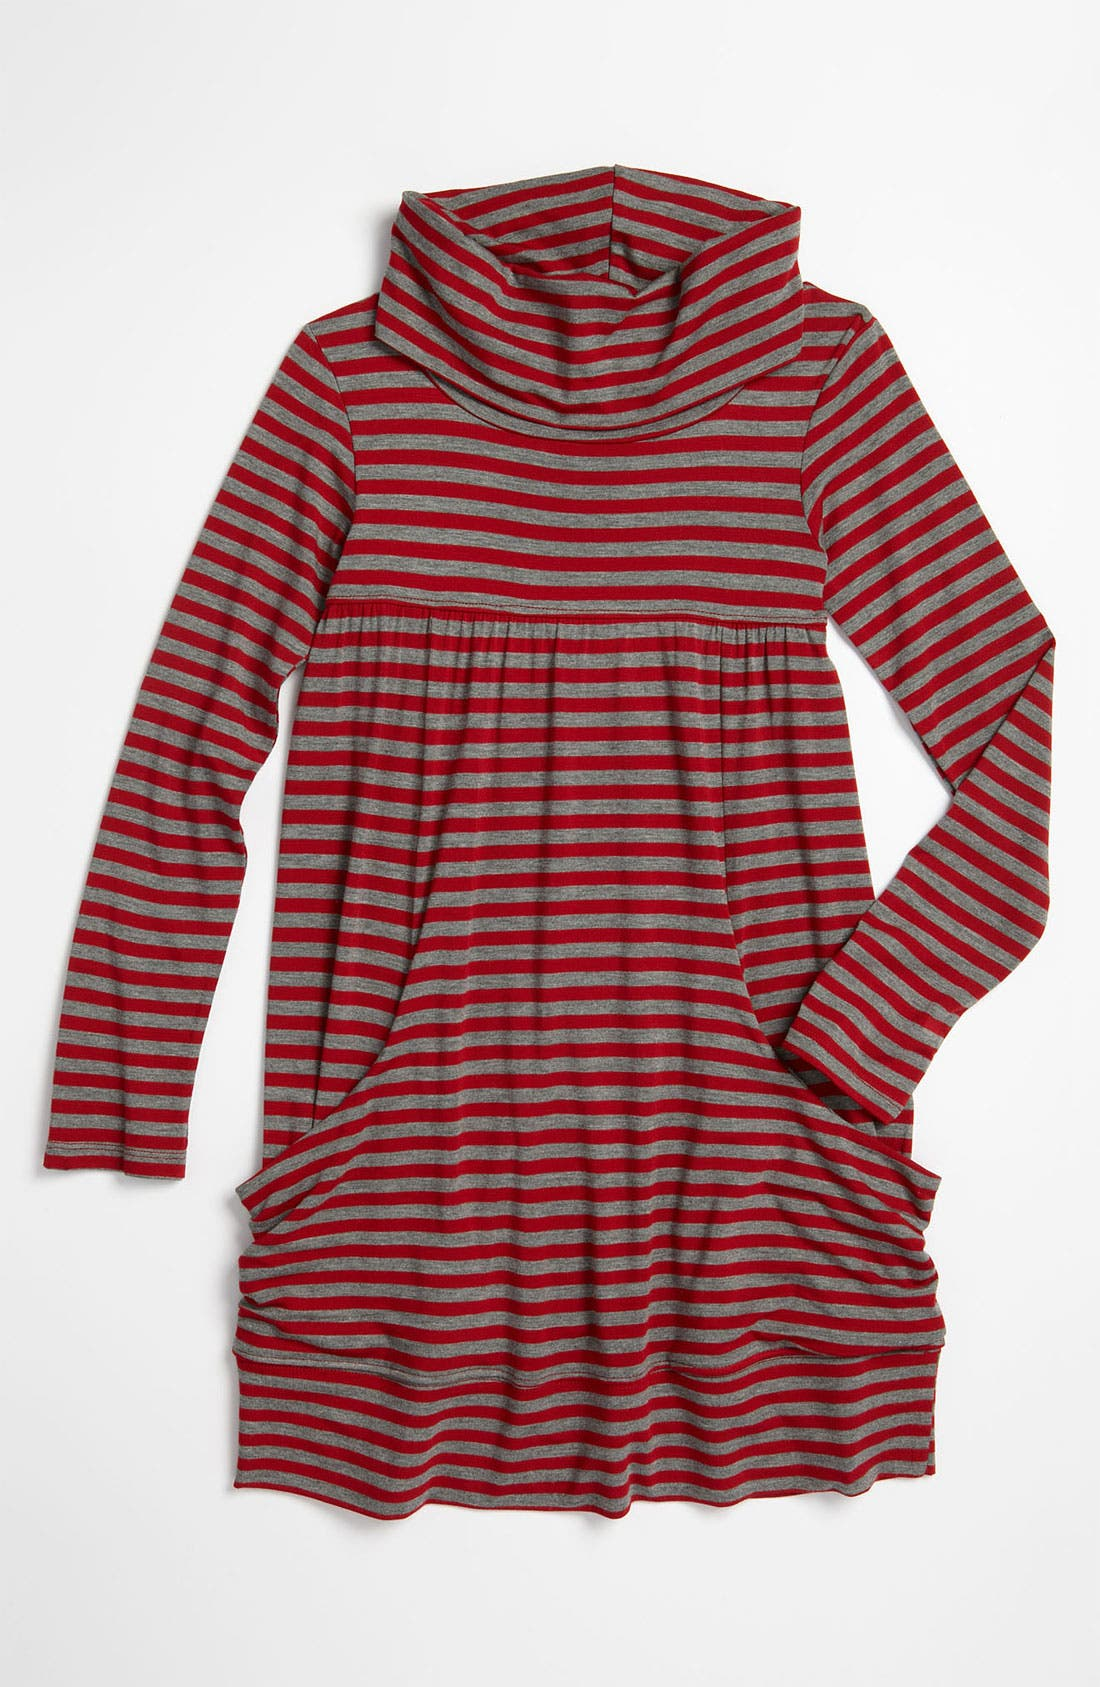 Alternate Image 1 Selected - United Colors of Benetton Kids Stripe Dress (Little Girls & Big Girls)